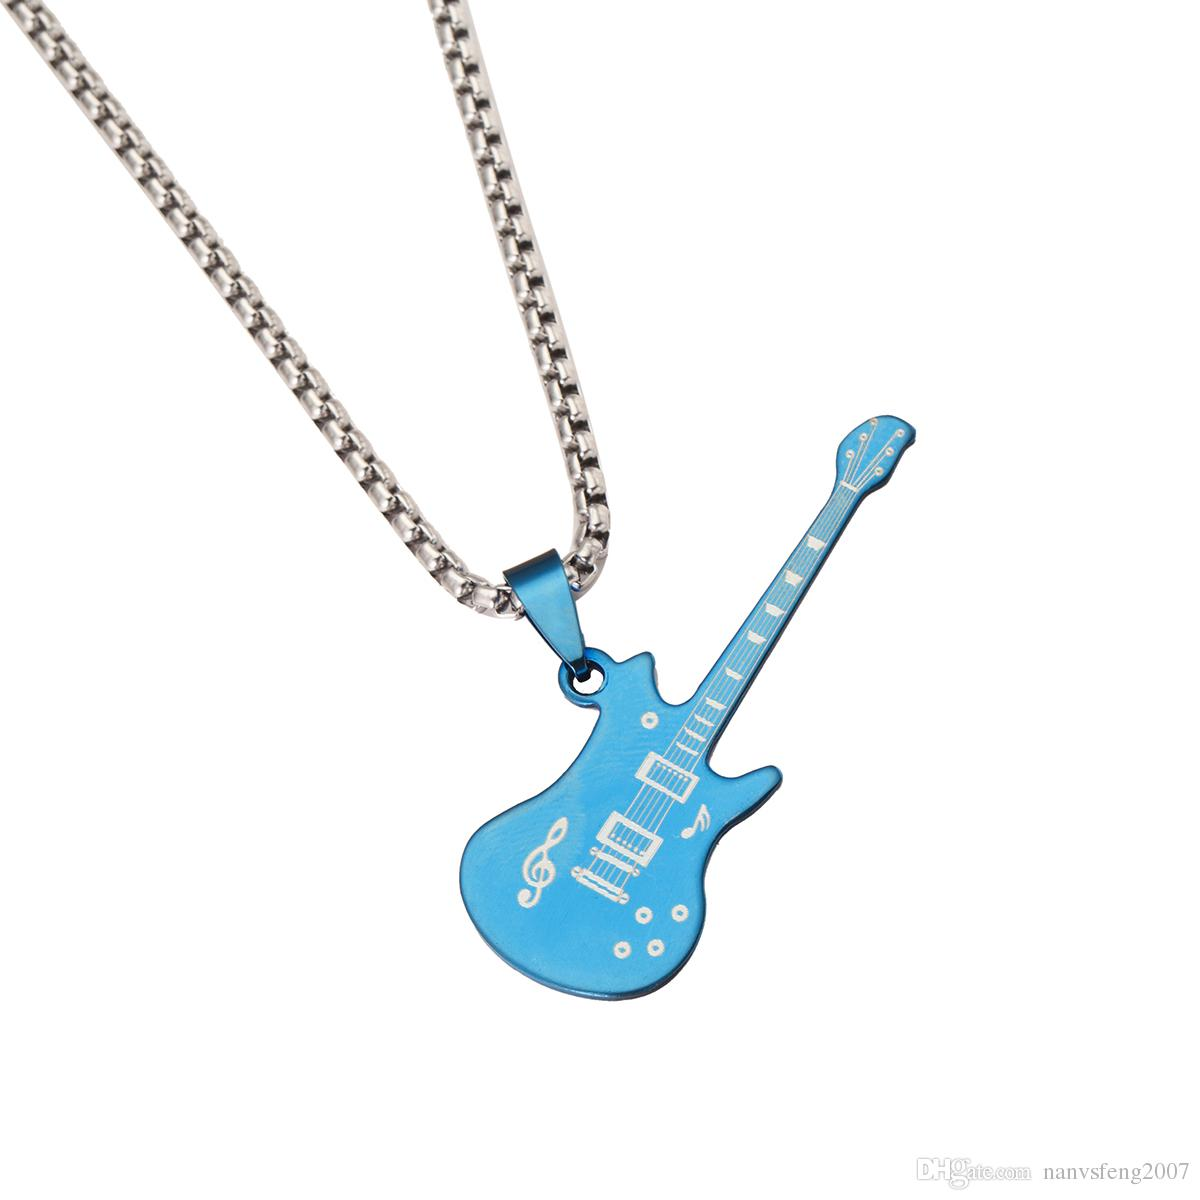 Cute Guitar Pendant Necklaces Stainless Steel Musical Instruments Jewelry For Girls Boys Women Men Birthday Gift